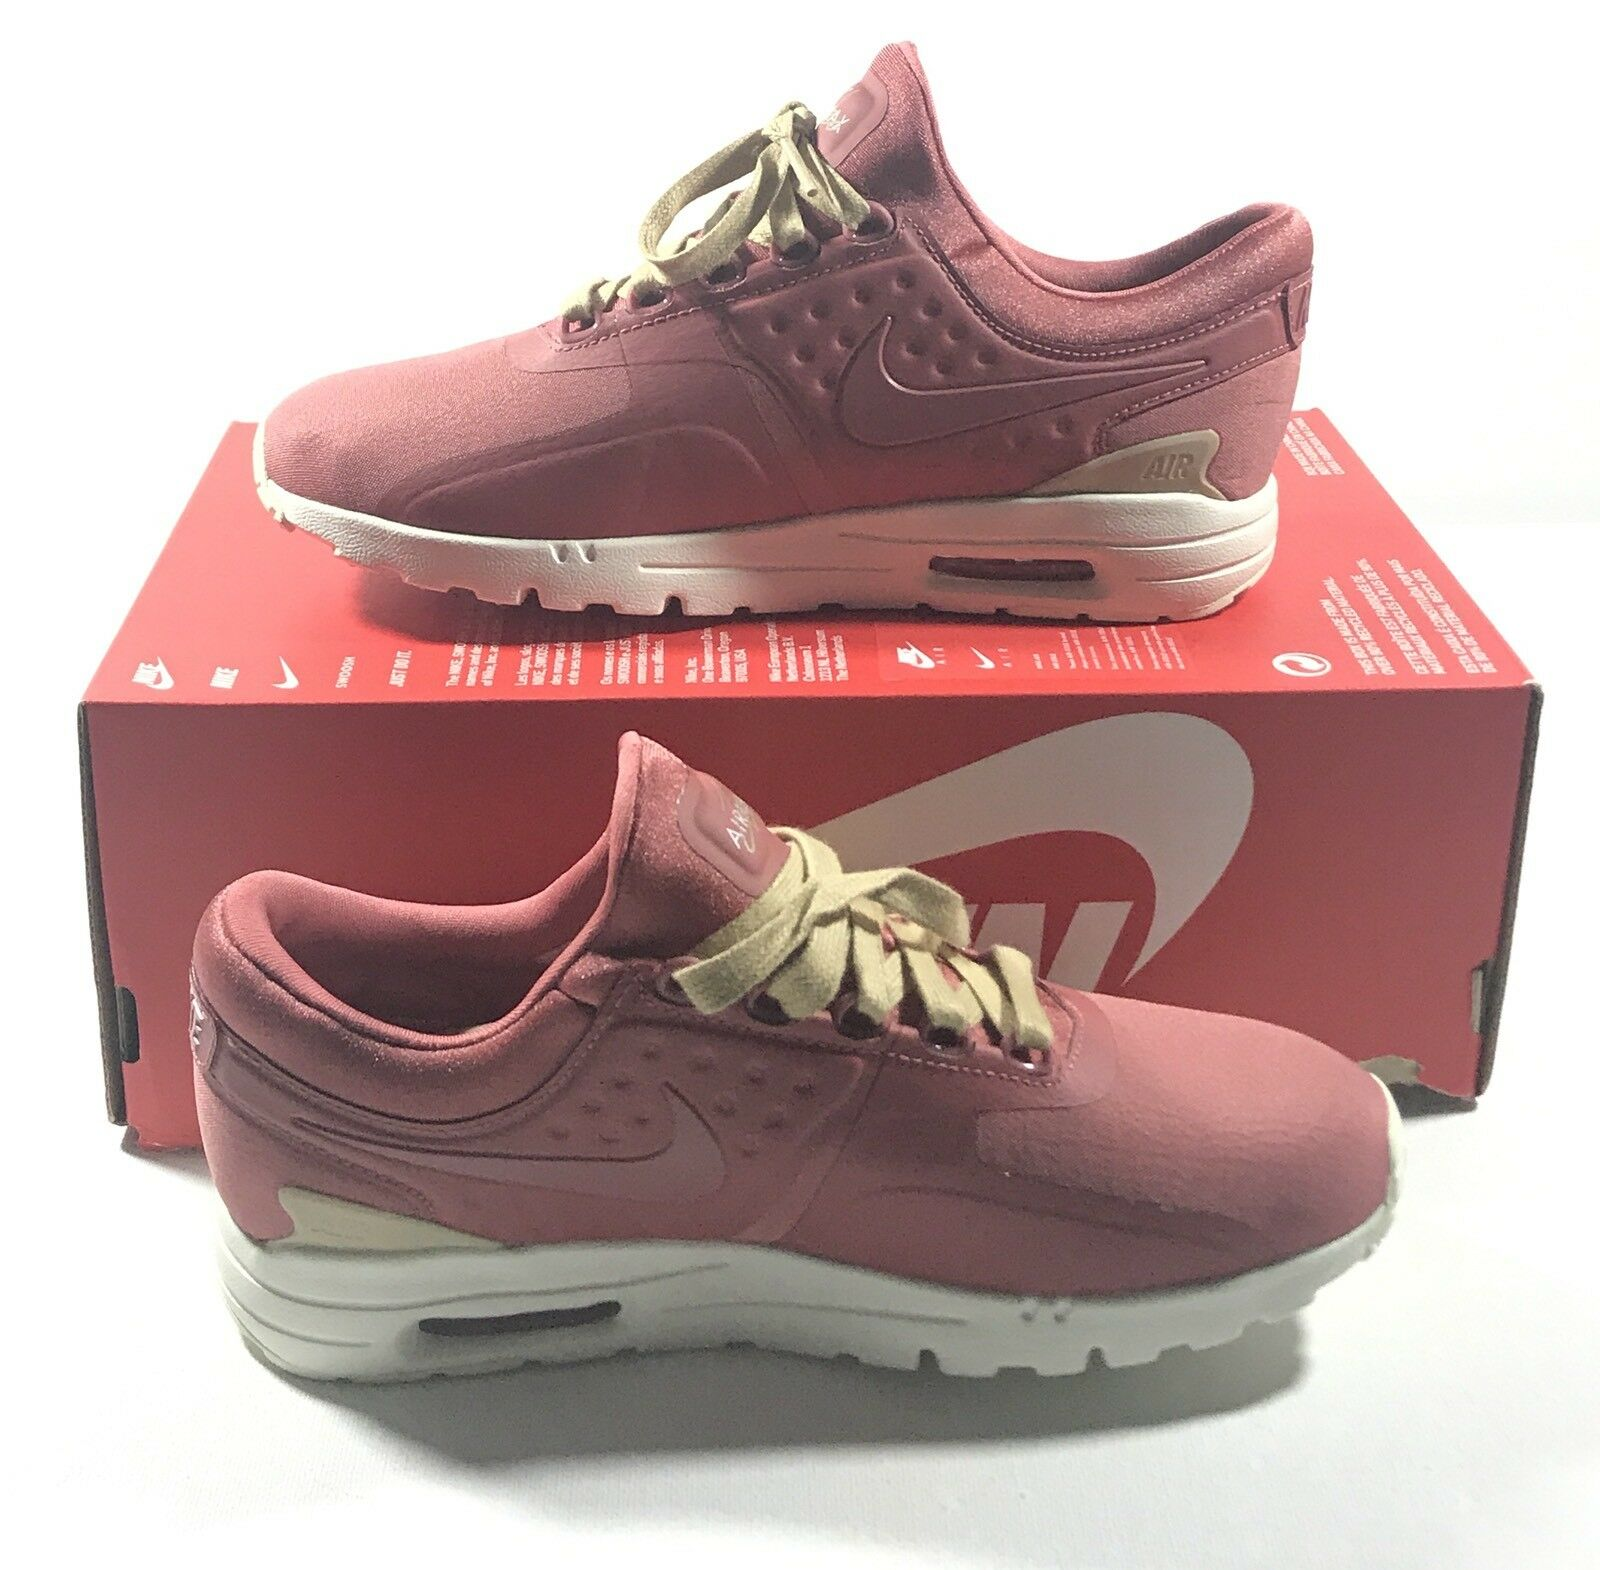 NIKE WOMENS AIR MAX ZERO CS CASUAL SHOES LIGHT REDWOOD AA3170-800 SIZE 8